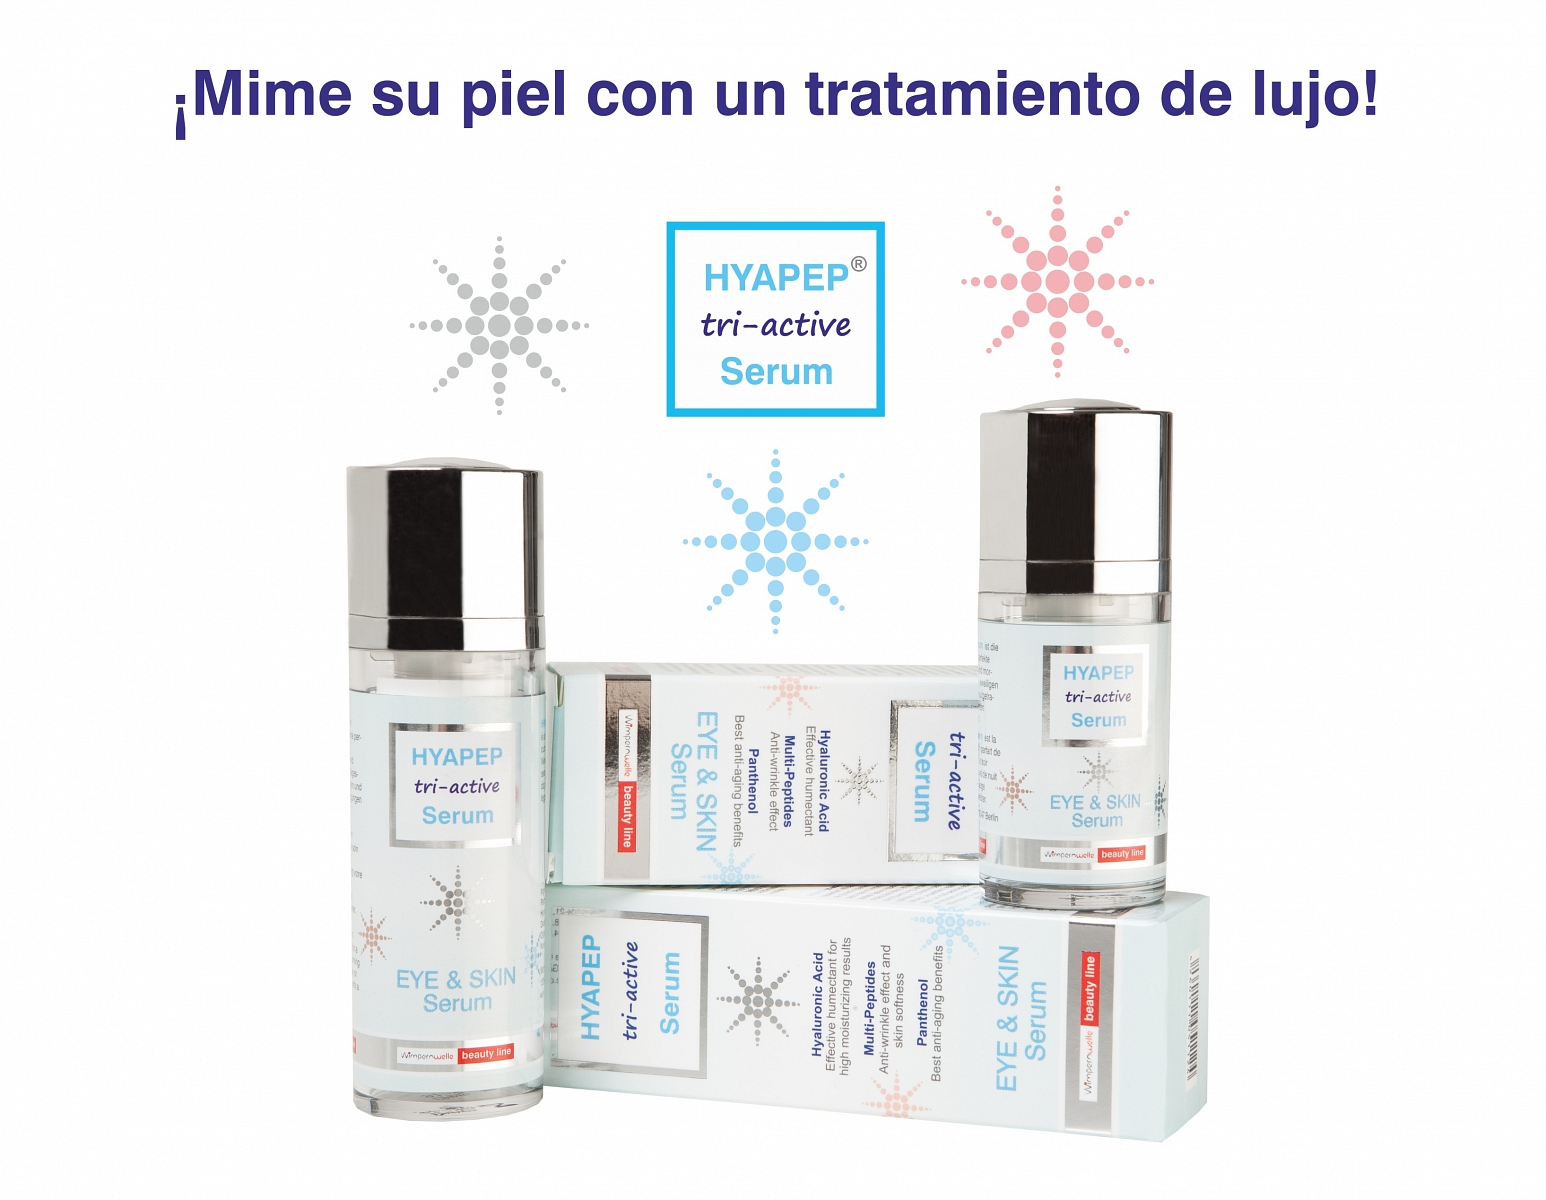 Hyapep tri-active Serum